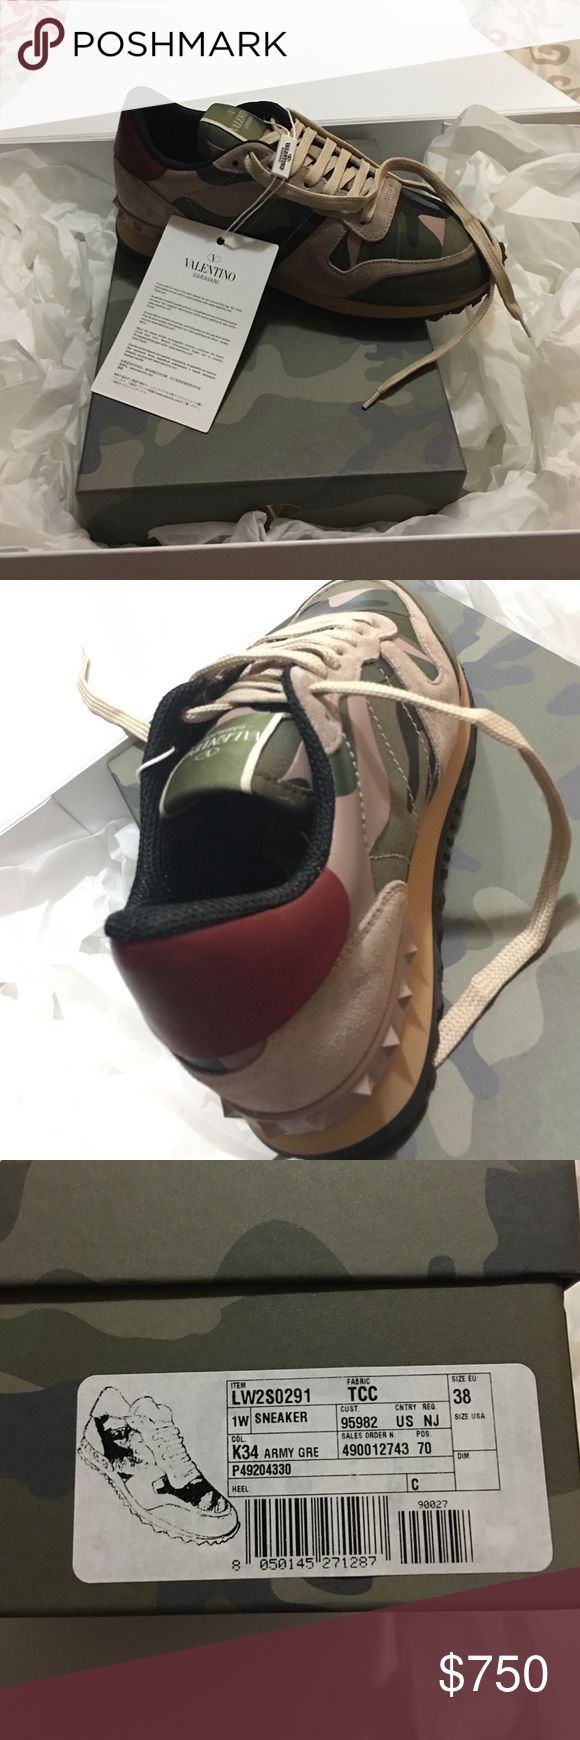 Valentino Military sneakers. Size 8 (38 eu) 100% Authentic. Never worn. Original packaging. Size 8 / 38 Eu. Camouflage Valentino. Pricing negotiable or Trade. Valentino Garavani Shoes Sneakers